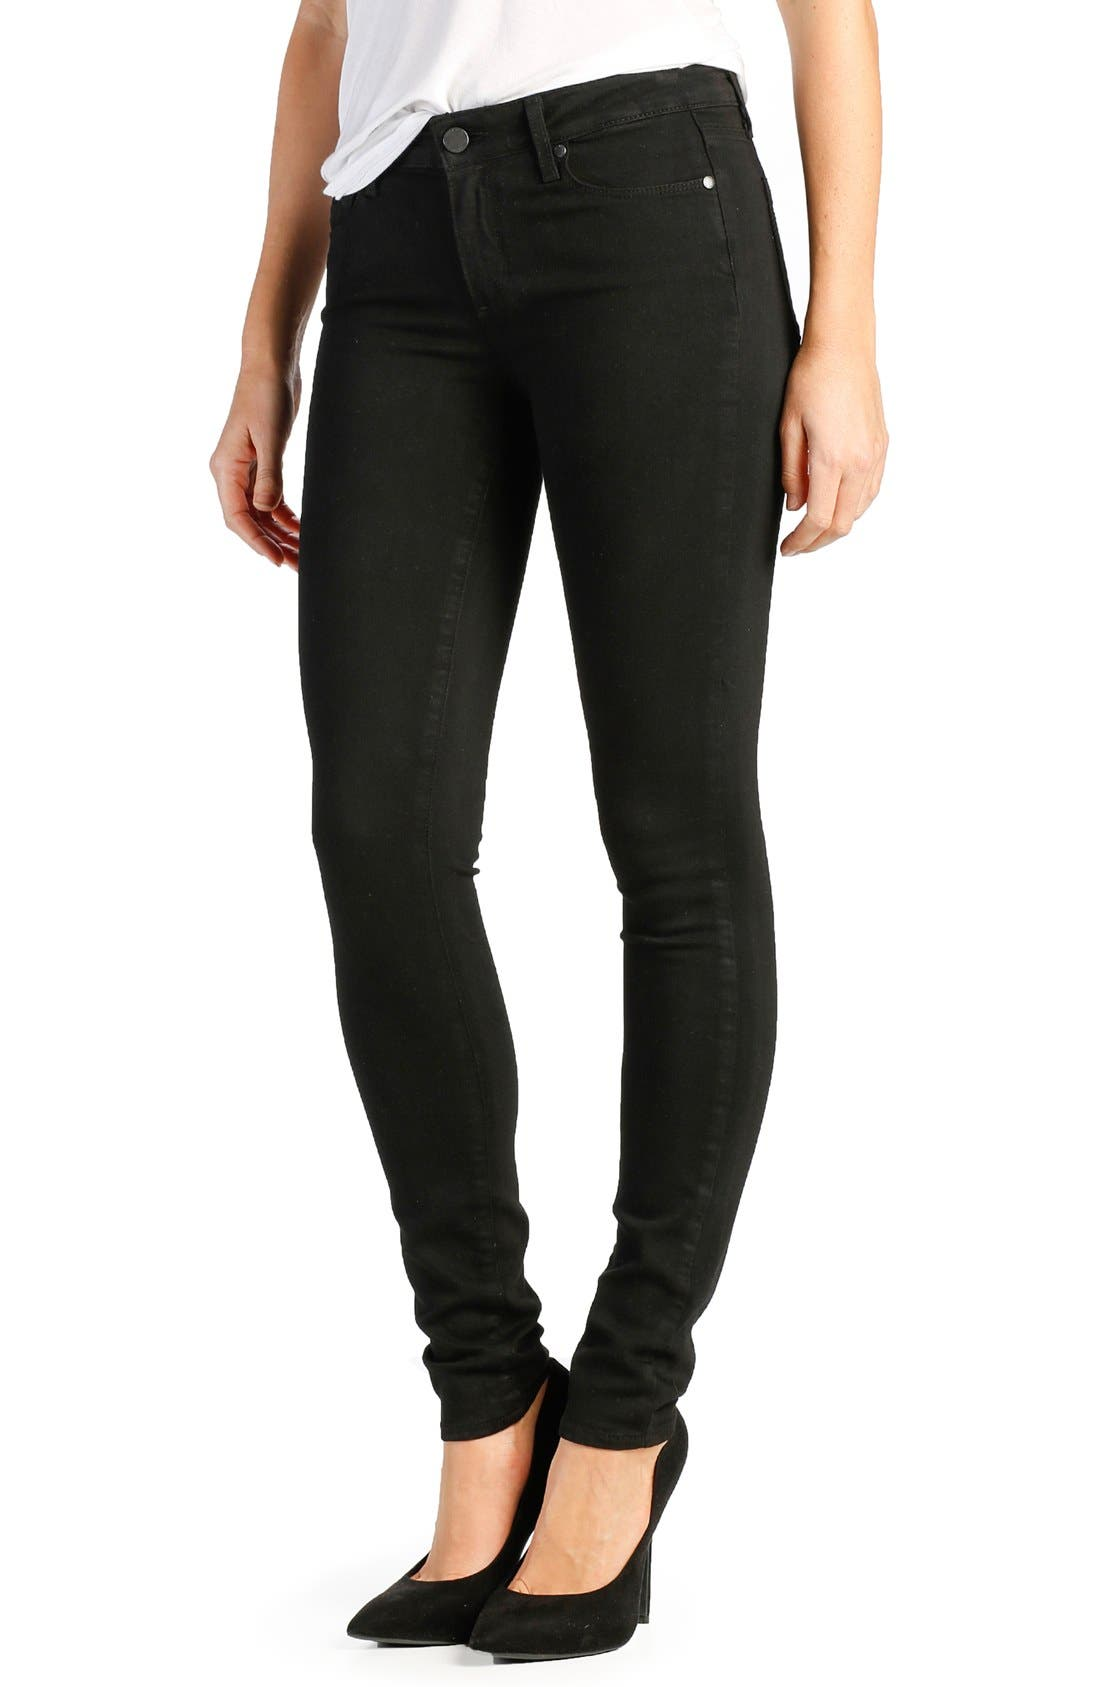 Alternate Image 1 Selected - PAIGE 'Transcend - Leggy' Ultra Skinny Jeans (Black Shadow) (Long)